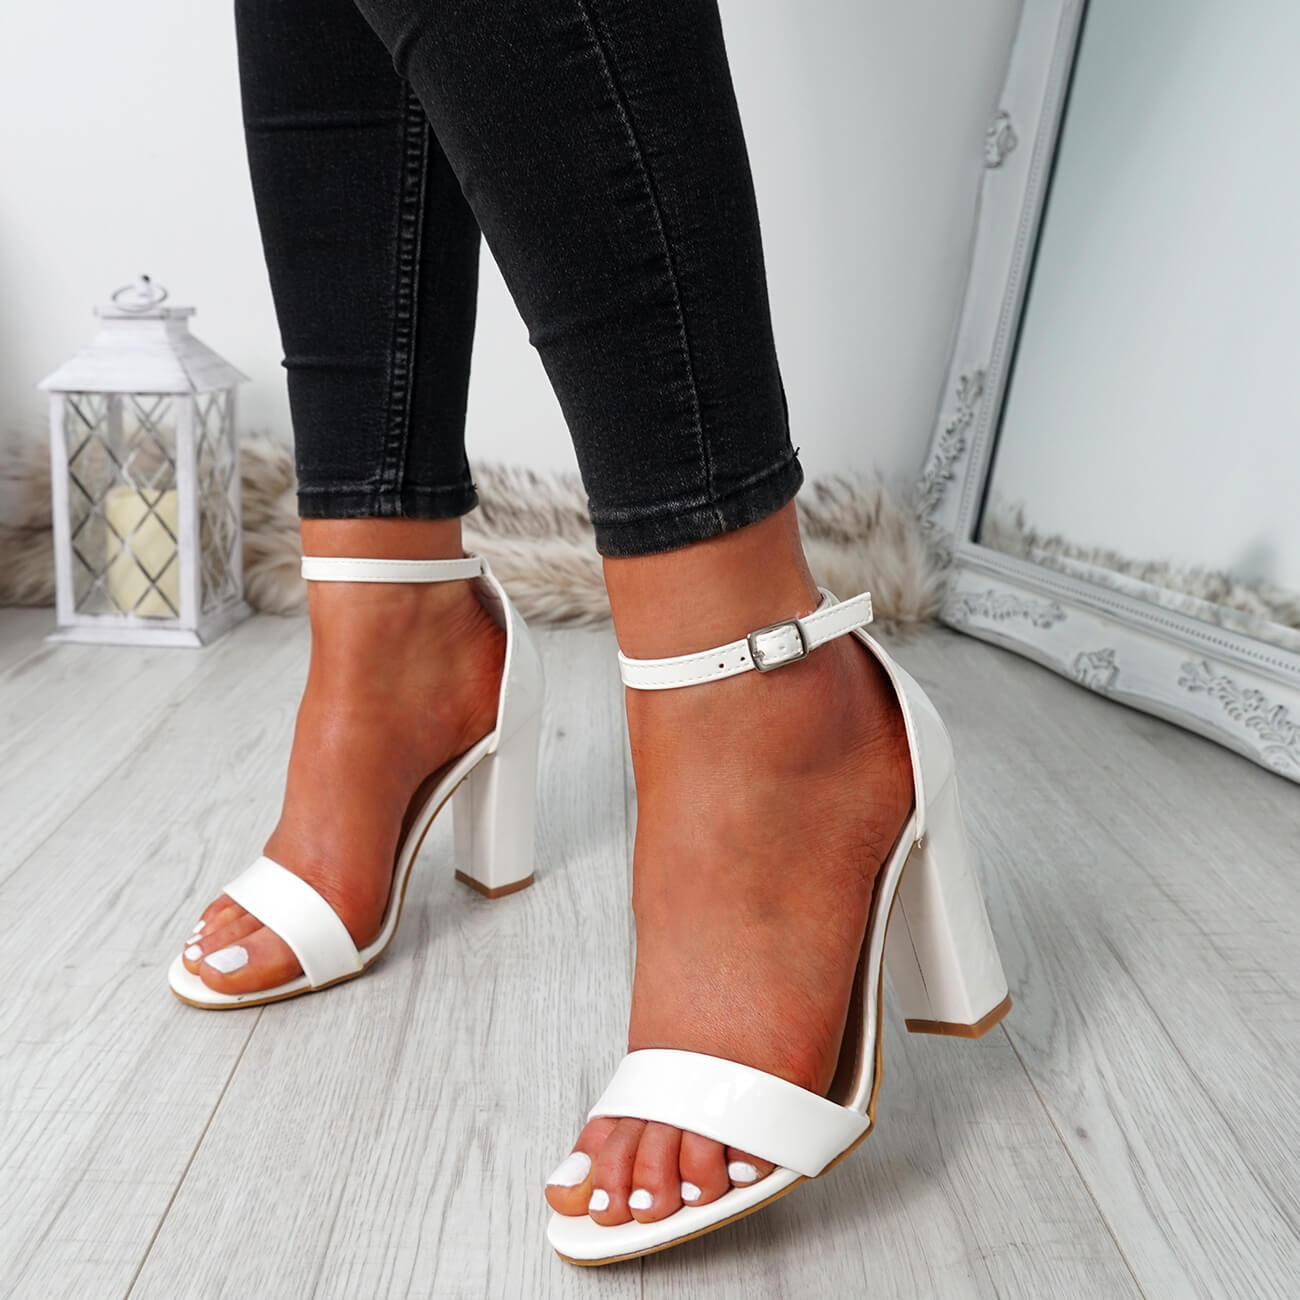 WOMENS-LADIES-ANKLE-STRAP-HIGH-BLOCK-HEEL-SANDALS-PEEP-TOE-PARTY-SHOES-SIZE thumbnail 30